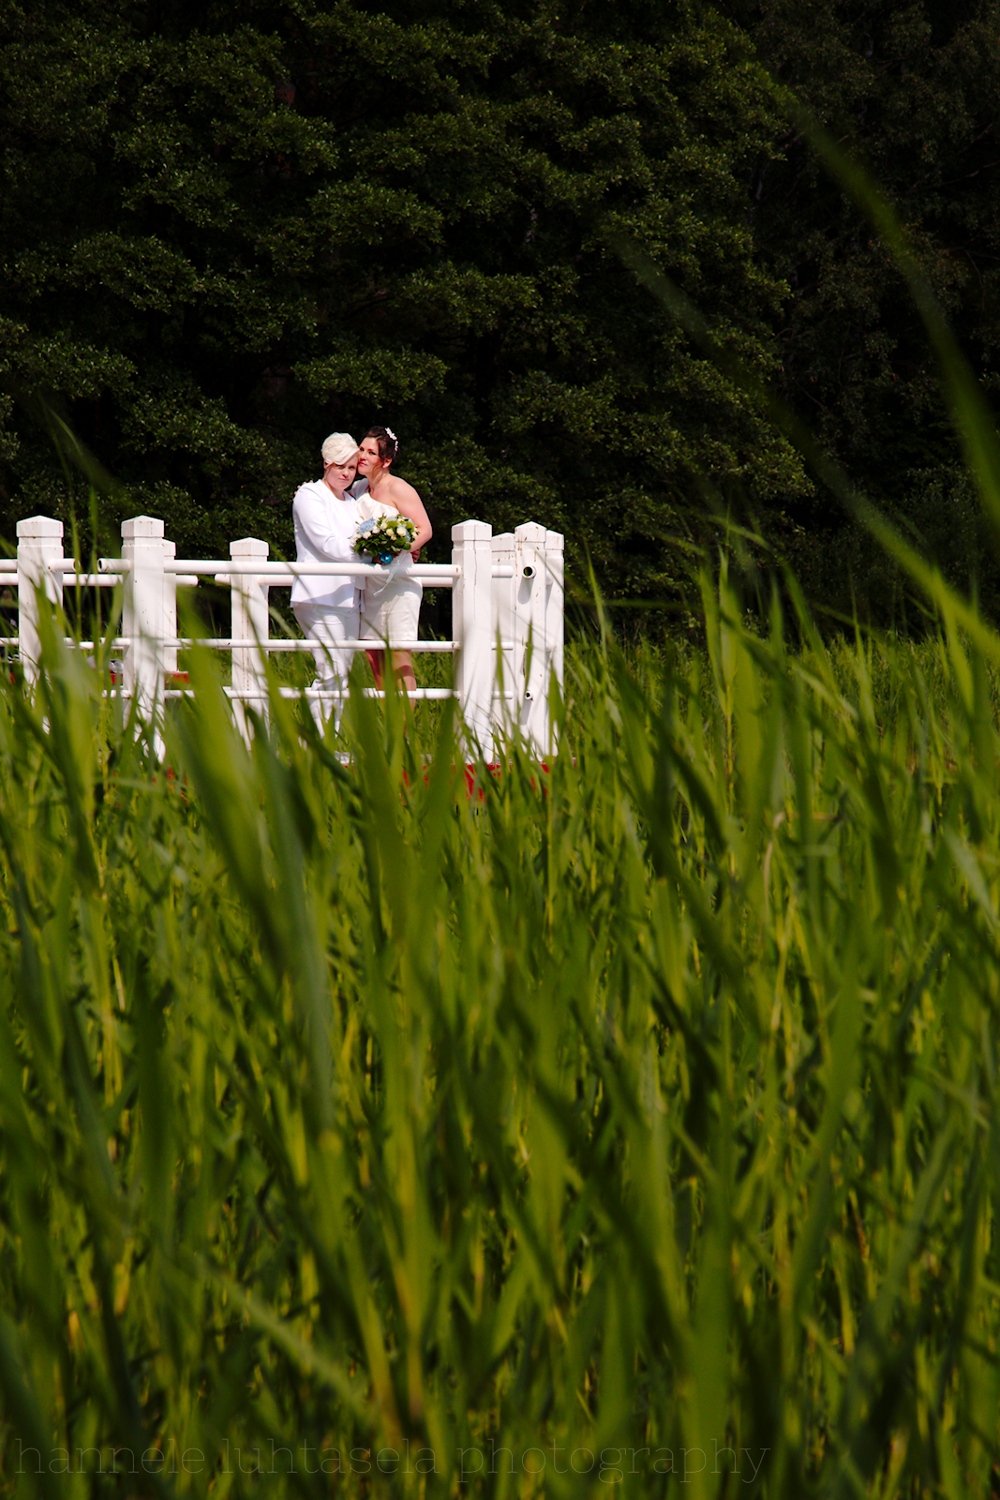 Wedding portrait with greenery. location portraits